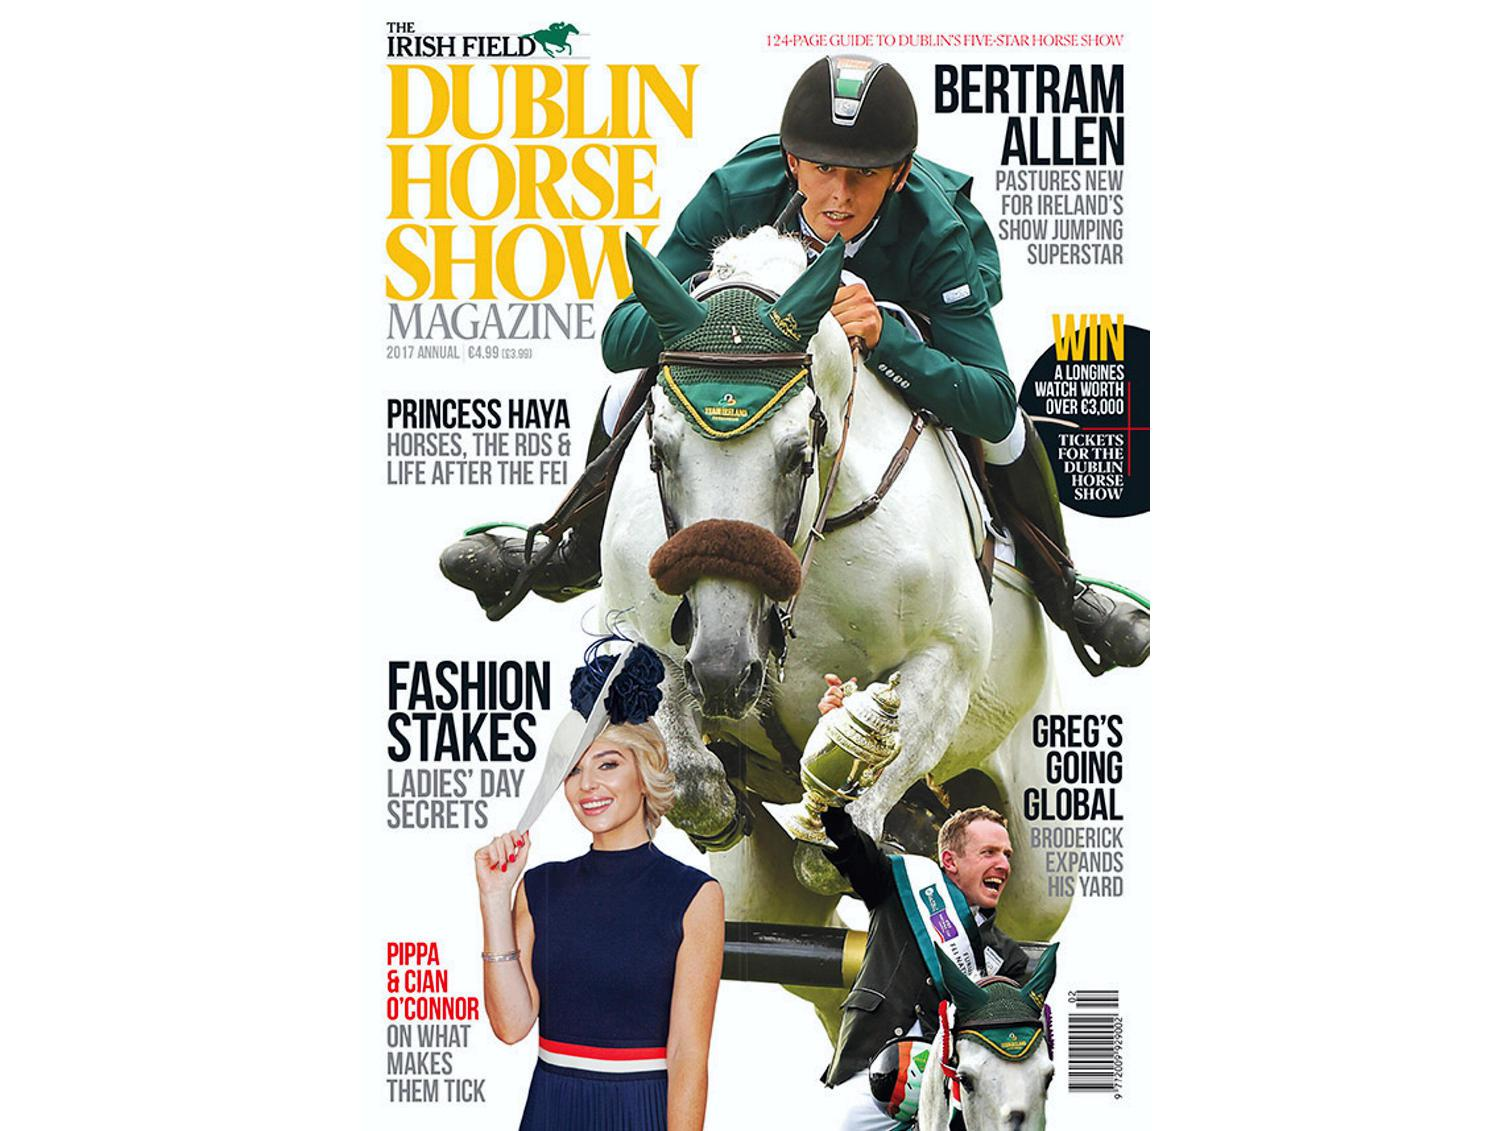 New Dublin Horse Show magazine out now